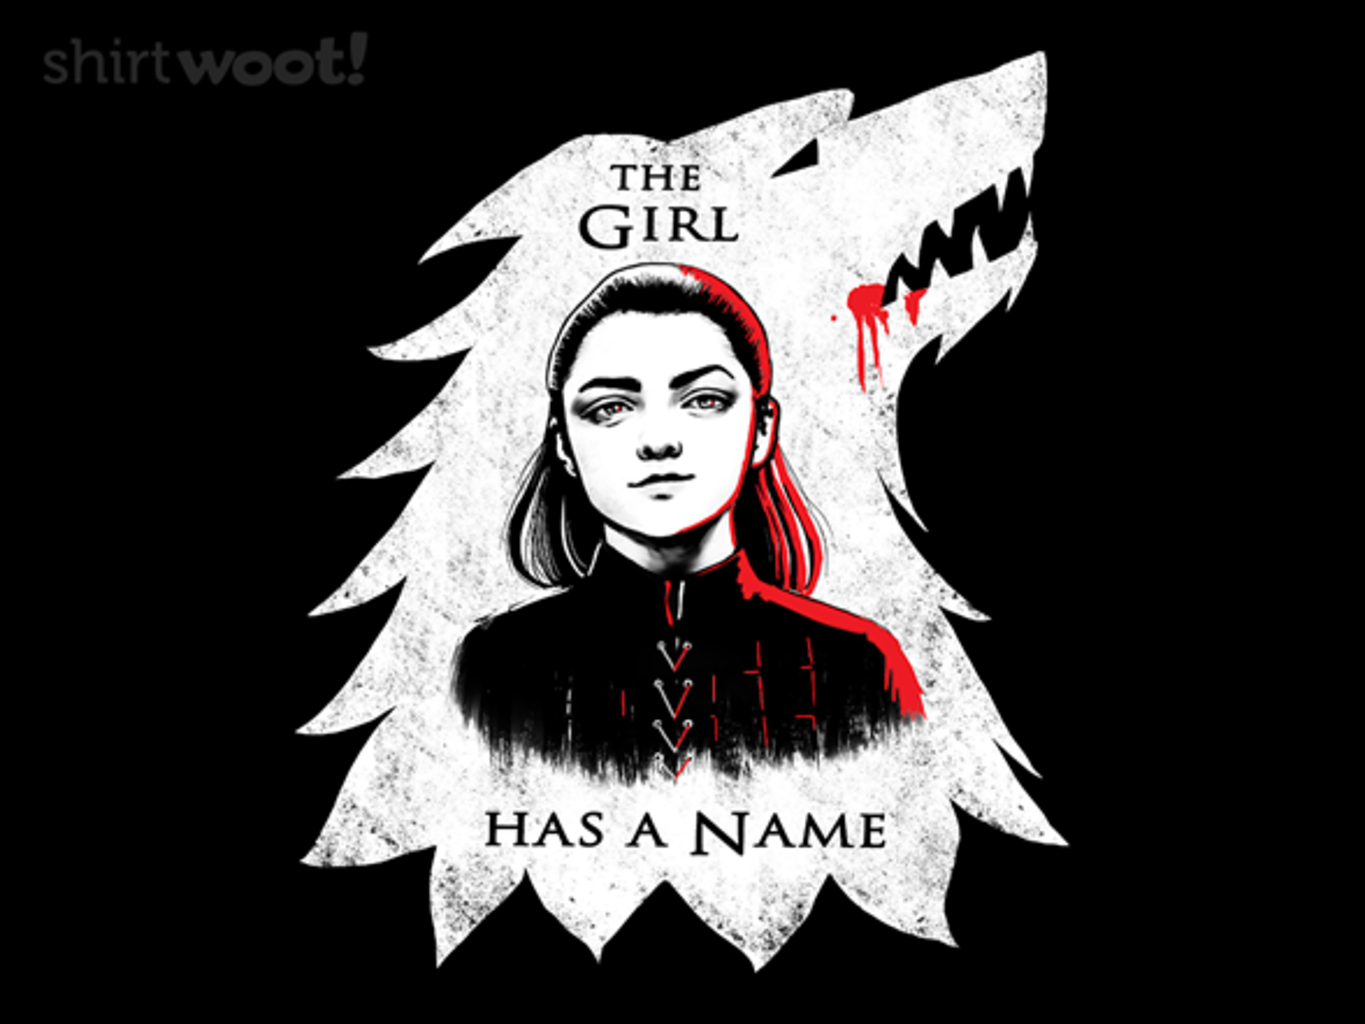 Woot!: The Girl Has a Name